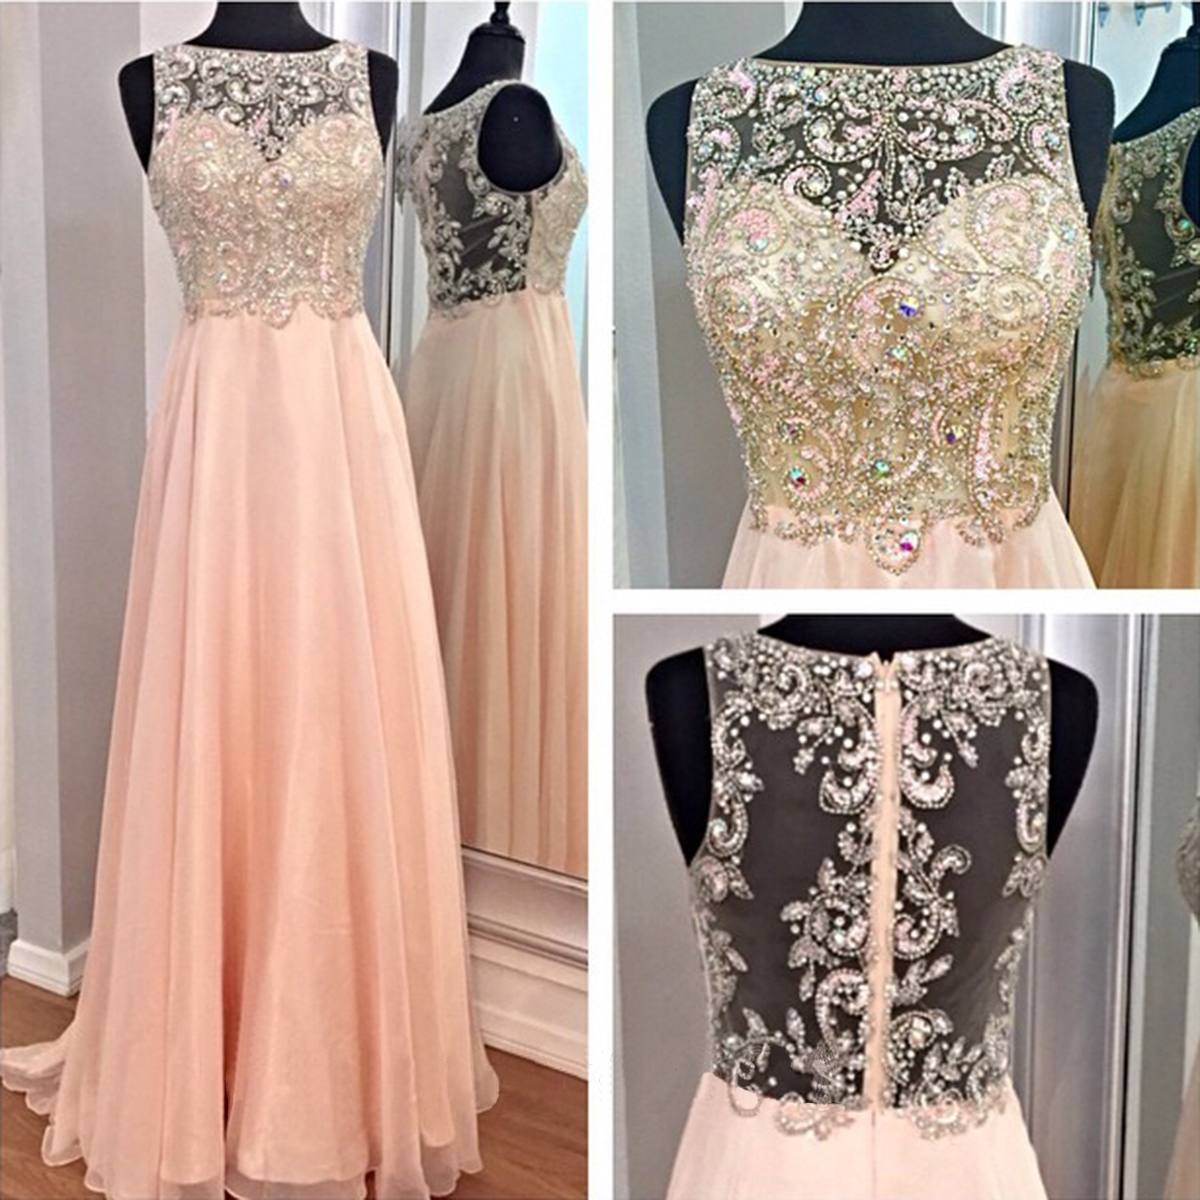 Beading Prom Dress, Peach Prom Dress, Long Prom Dress, Elegant Prom Dress,  Prom Dress, Pretty Prom Dress, Dress For Prom, BD110